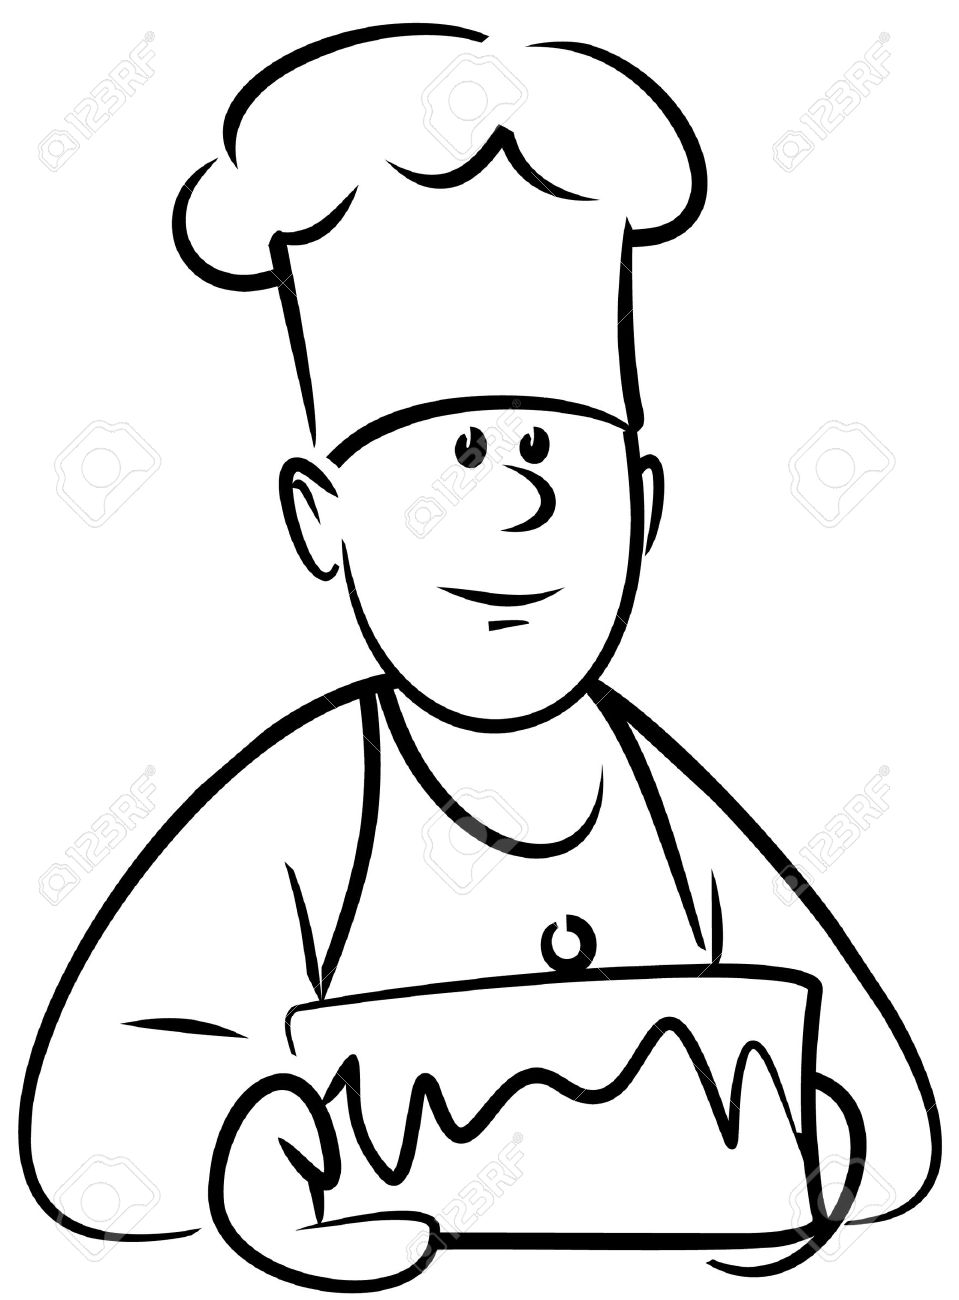 Baker clipart baker man. Drawing at getdrawings com